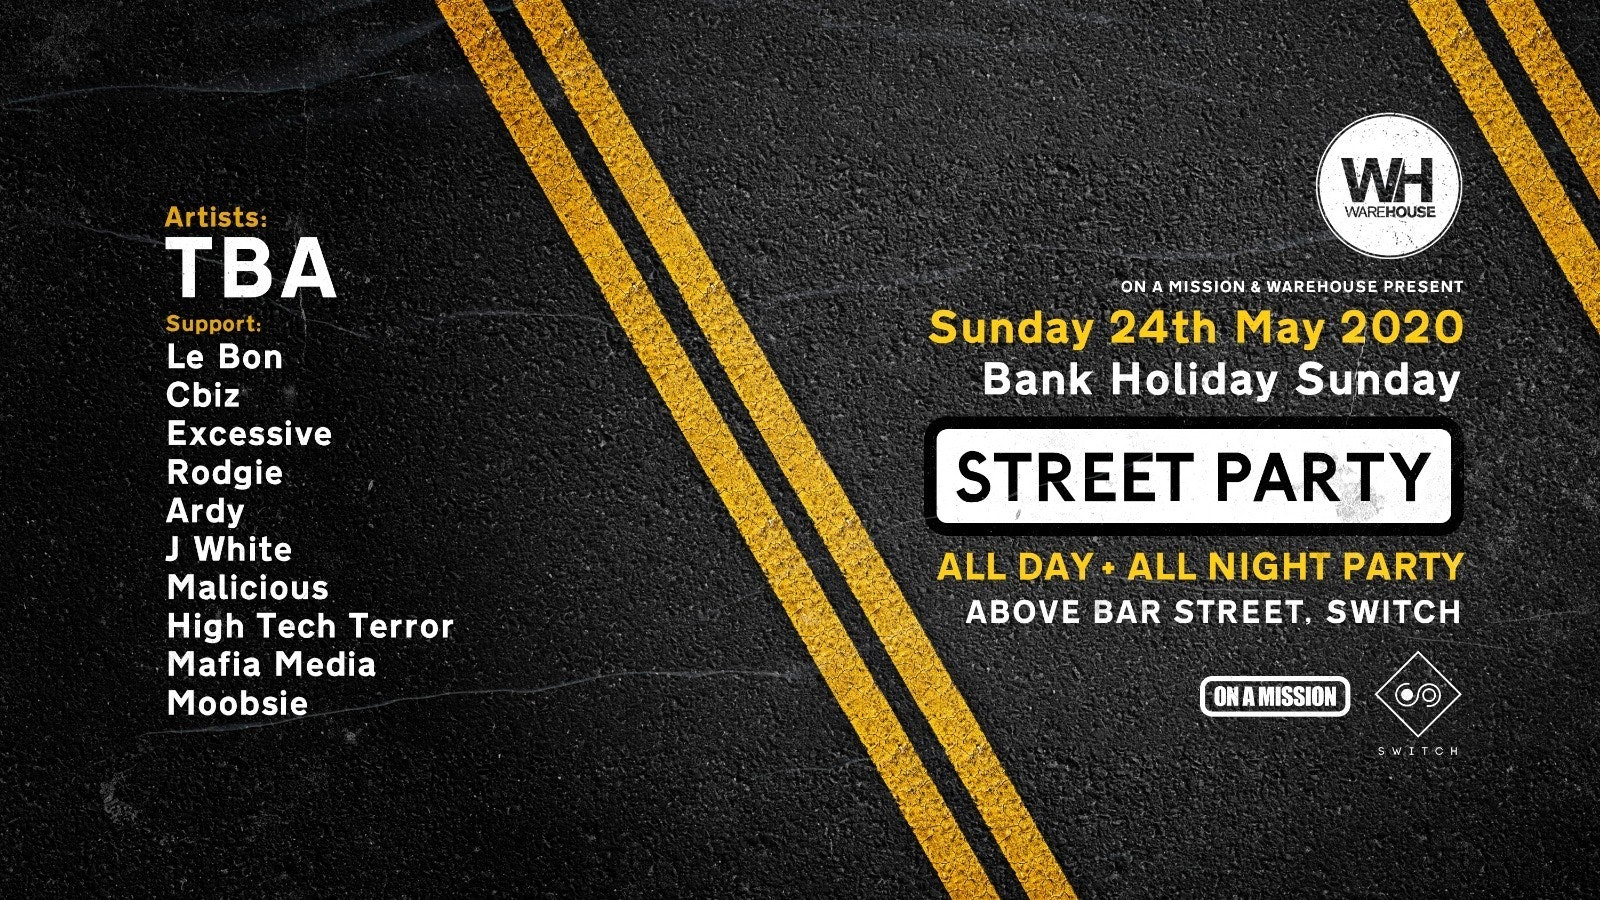 Warehouse & On A Mission Present: Street Party